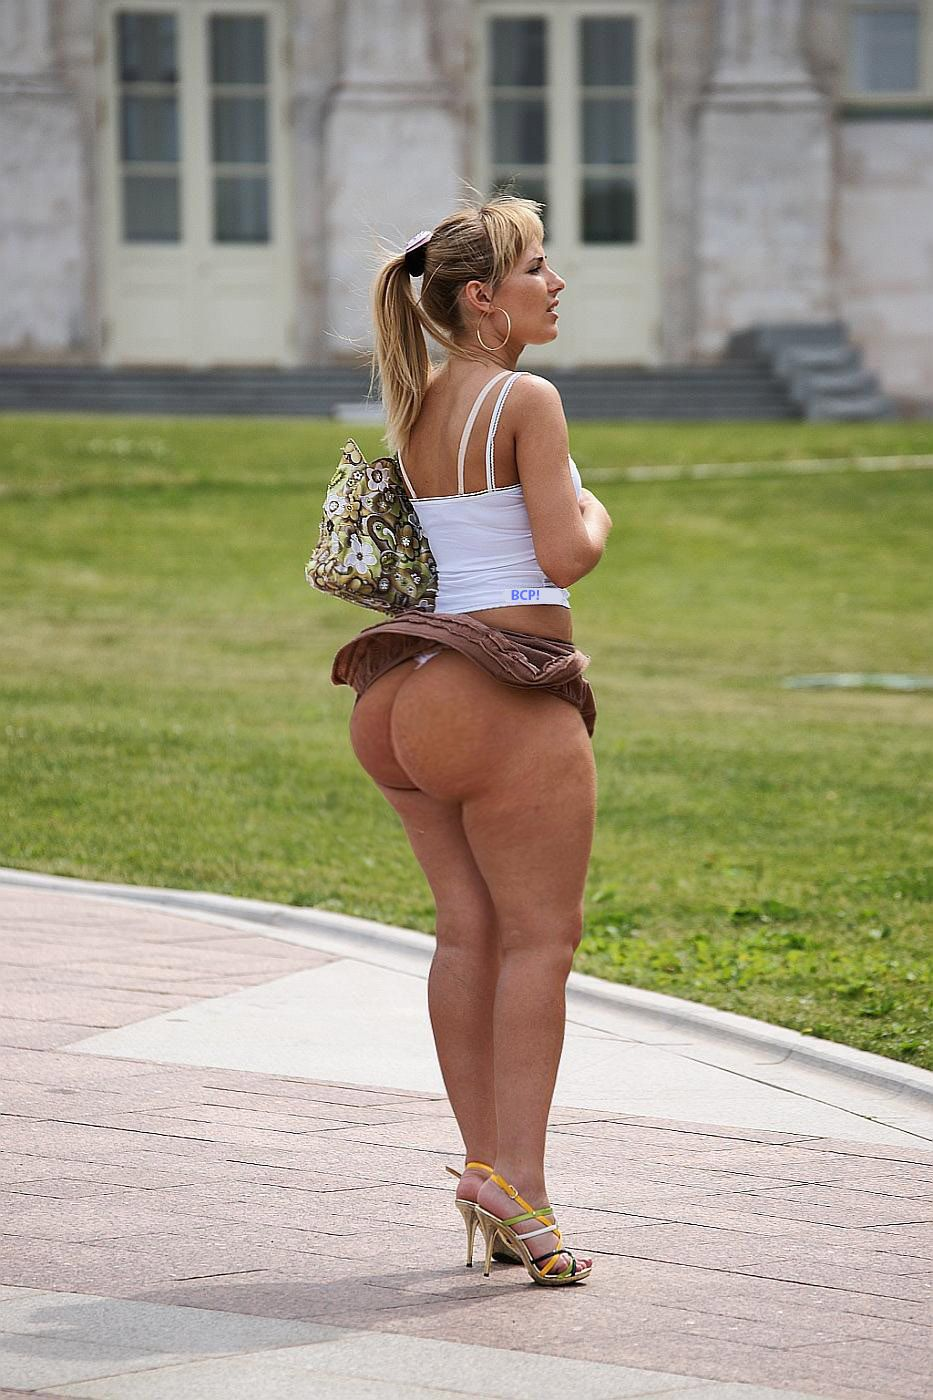 1000+ images about Big Booty on Pinterest | White girls, Daisy ...